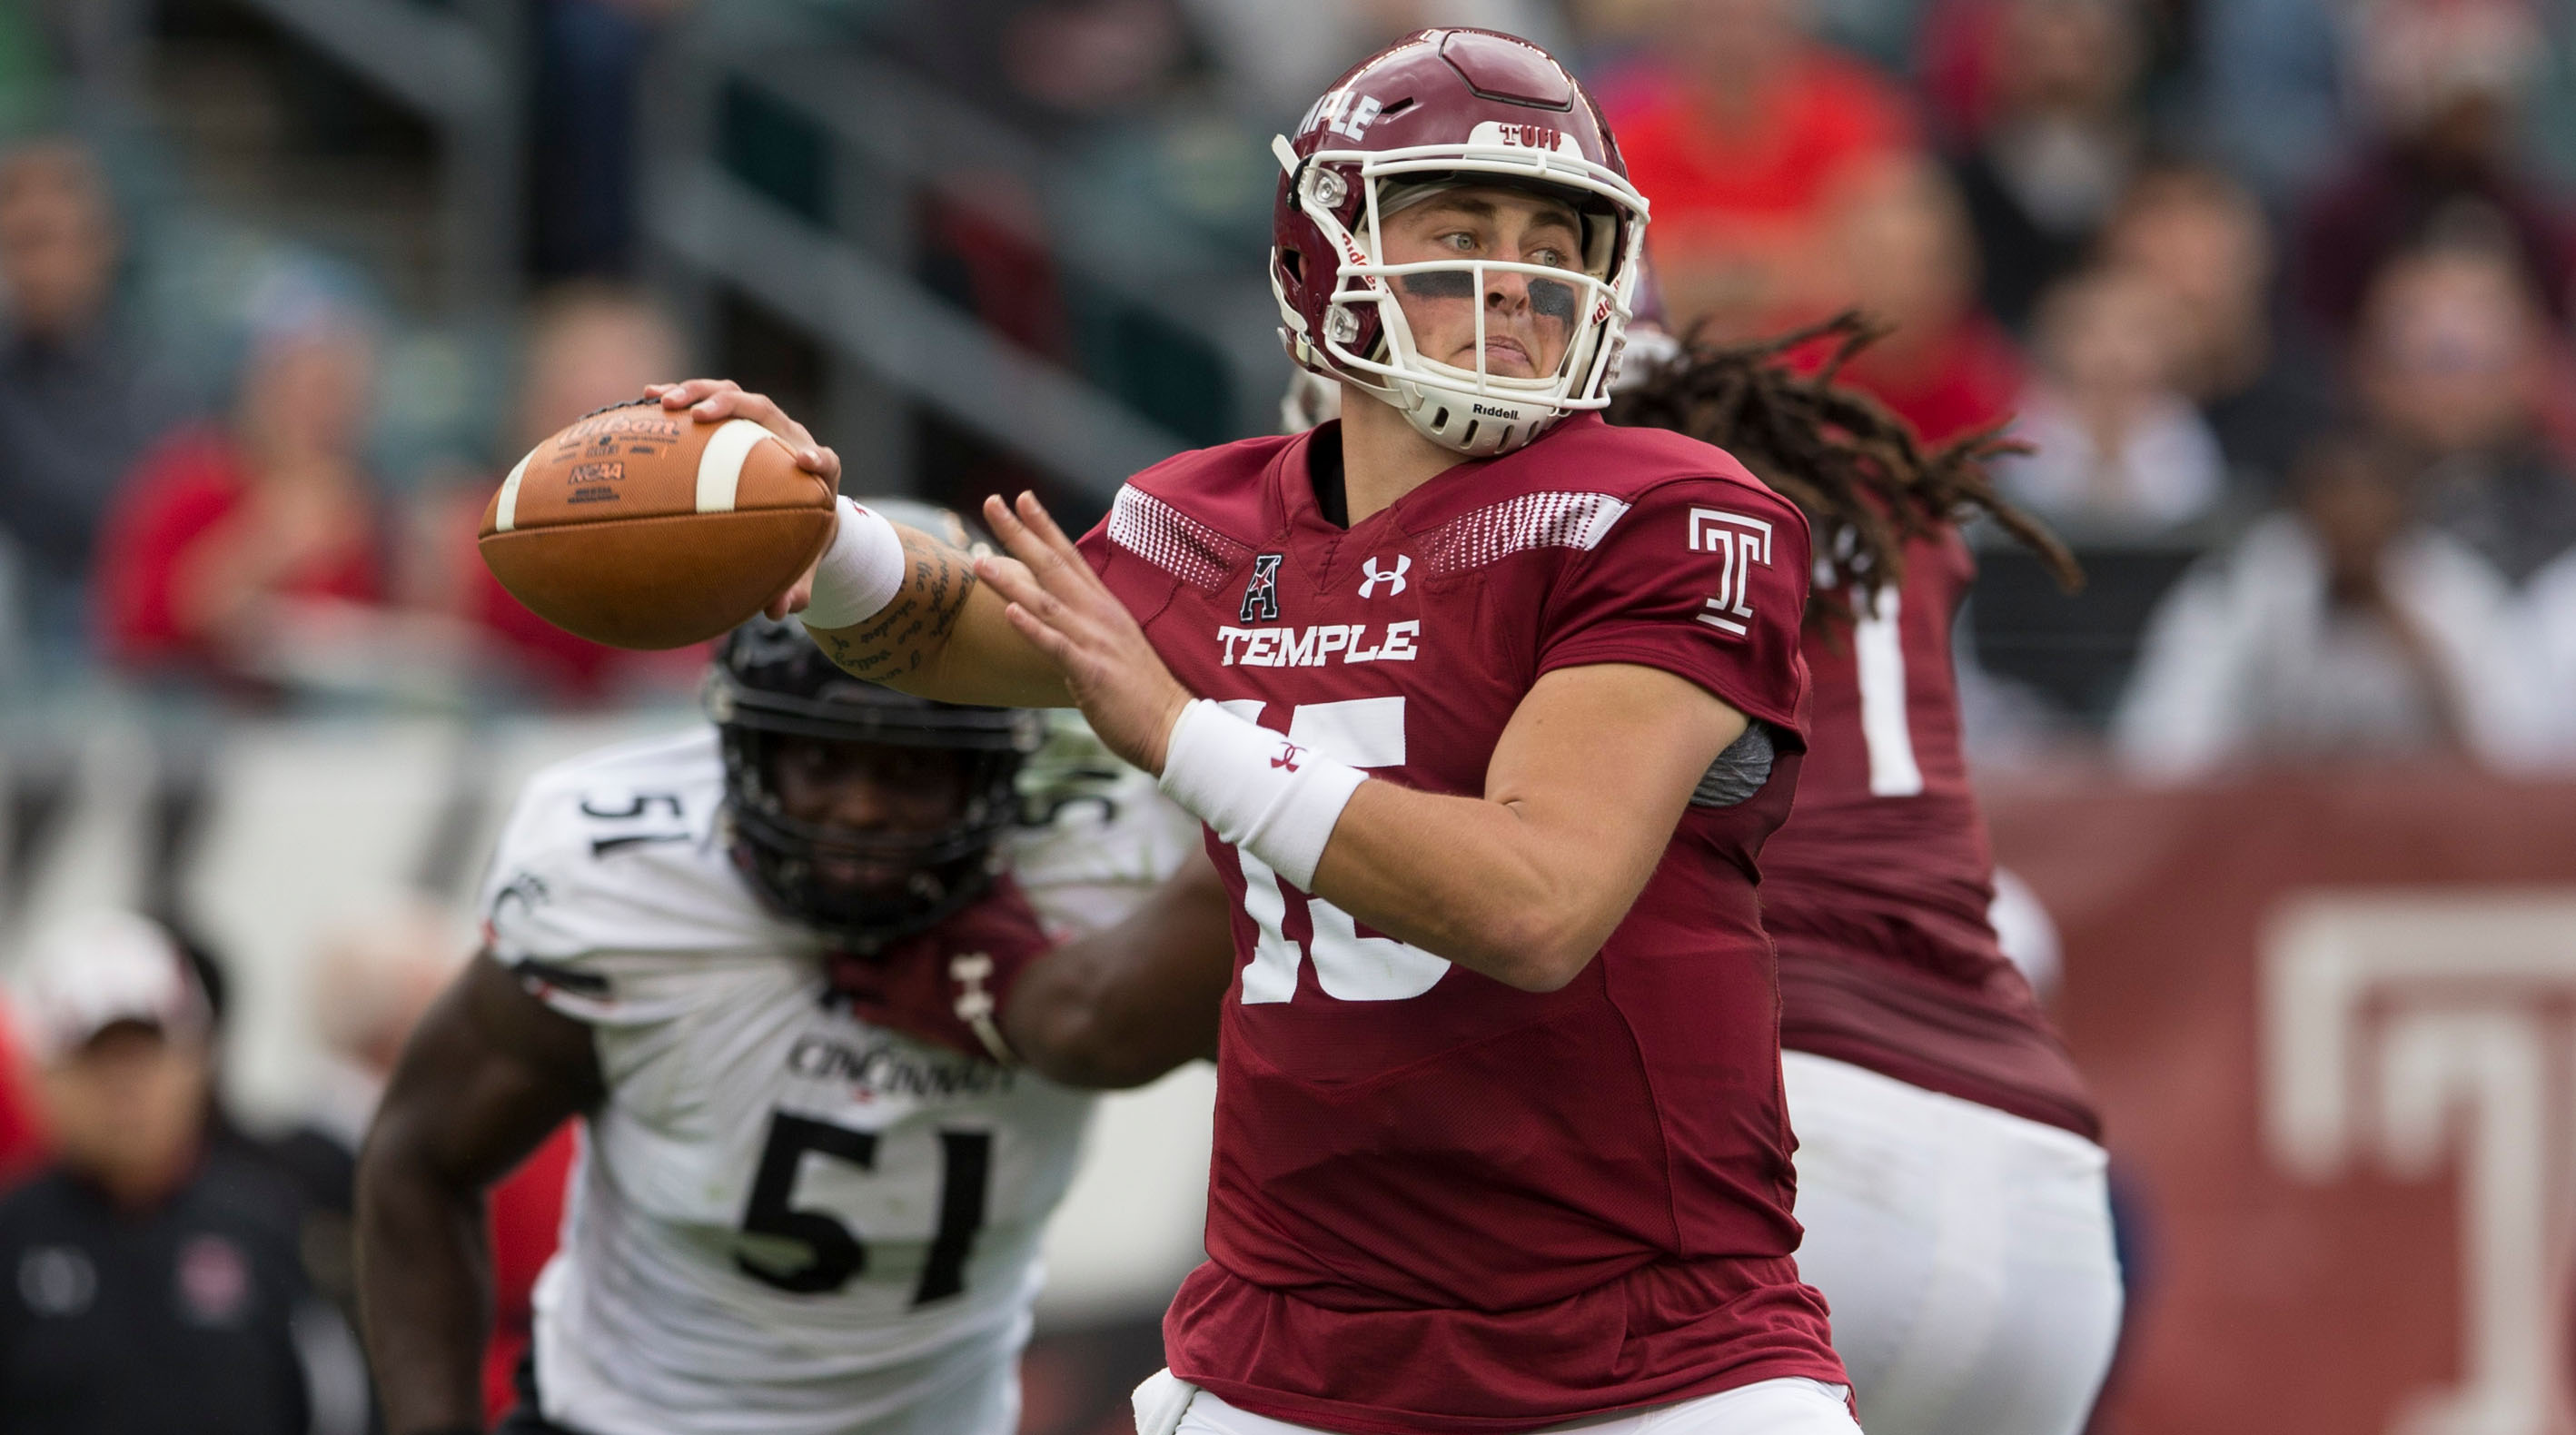 Temple QB Anthony Russo